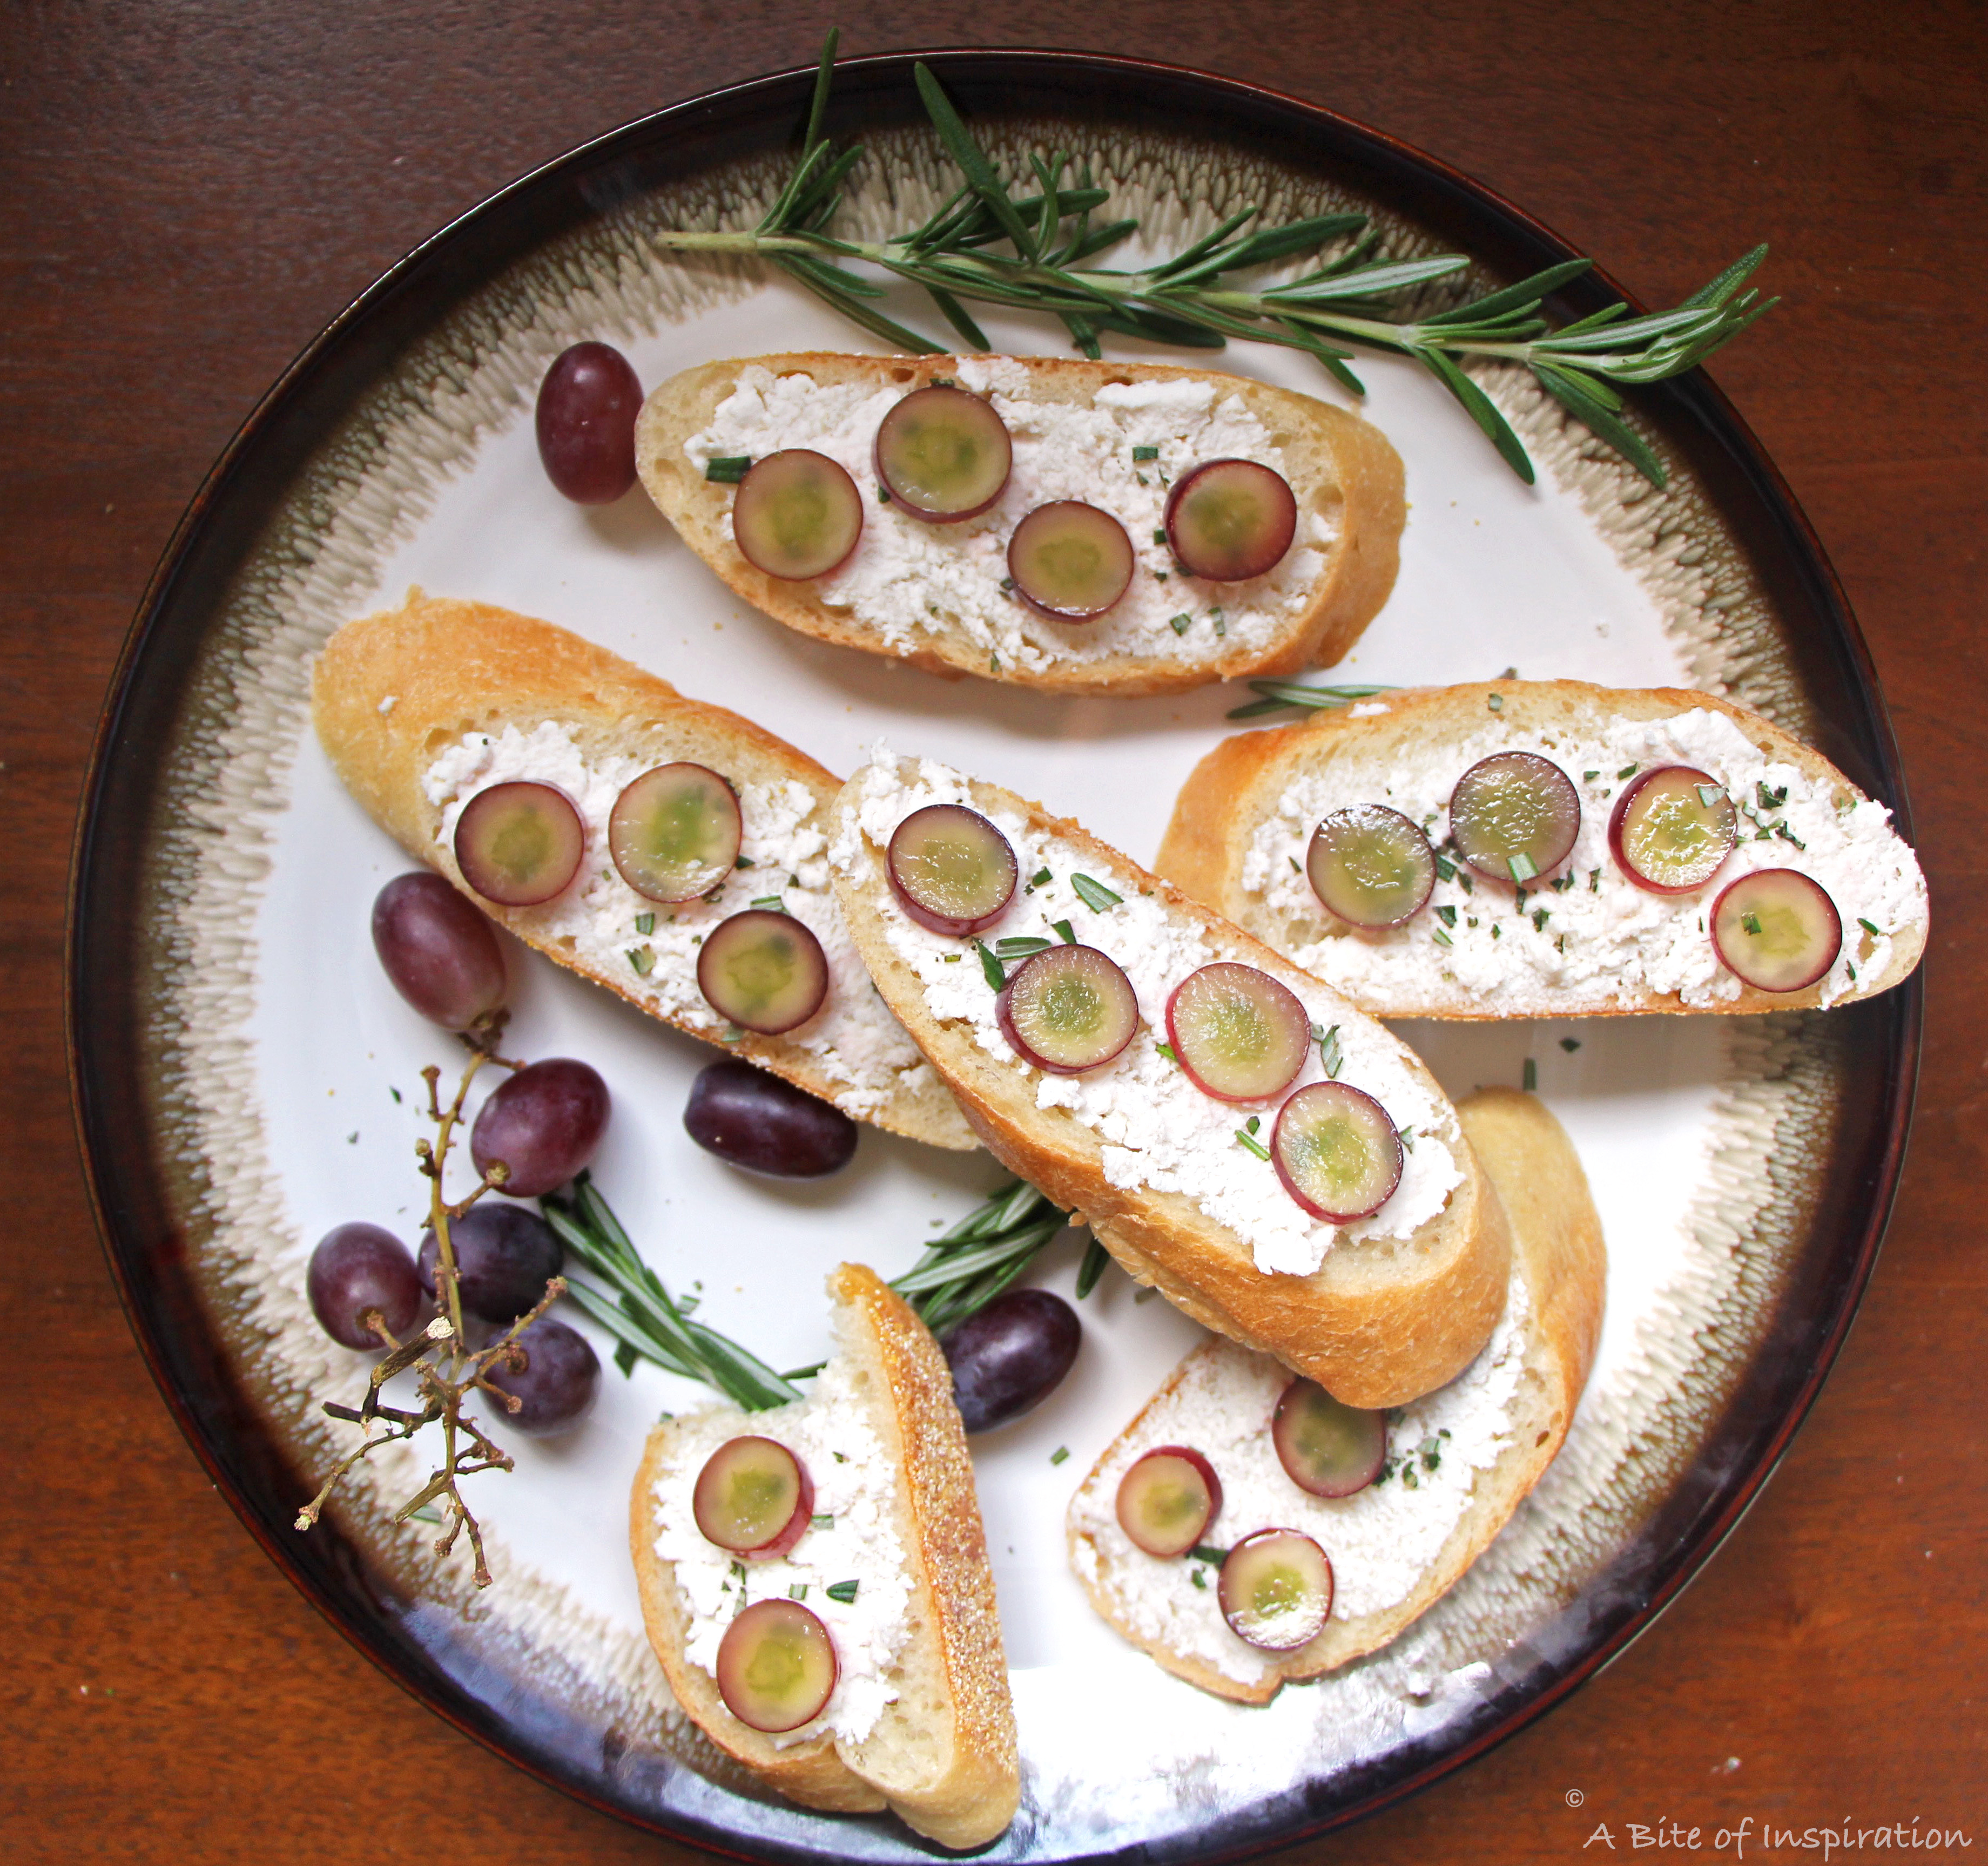 Plate of Soft Cheese Crostini with Pickled Grapes and Rosemary with grapes and sprigs of rosemary around the sides